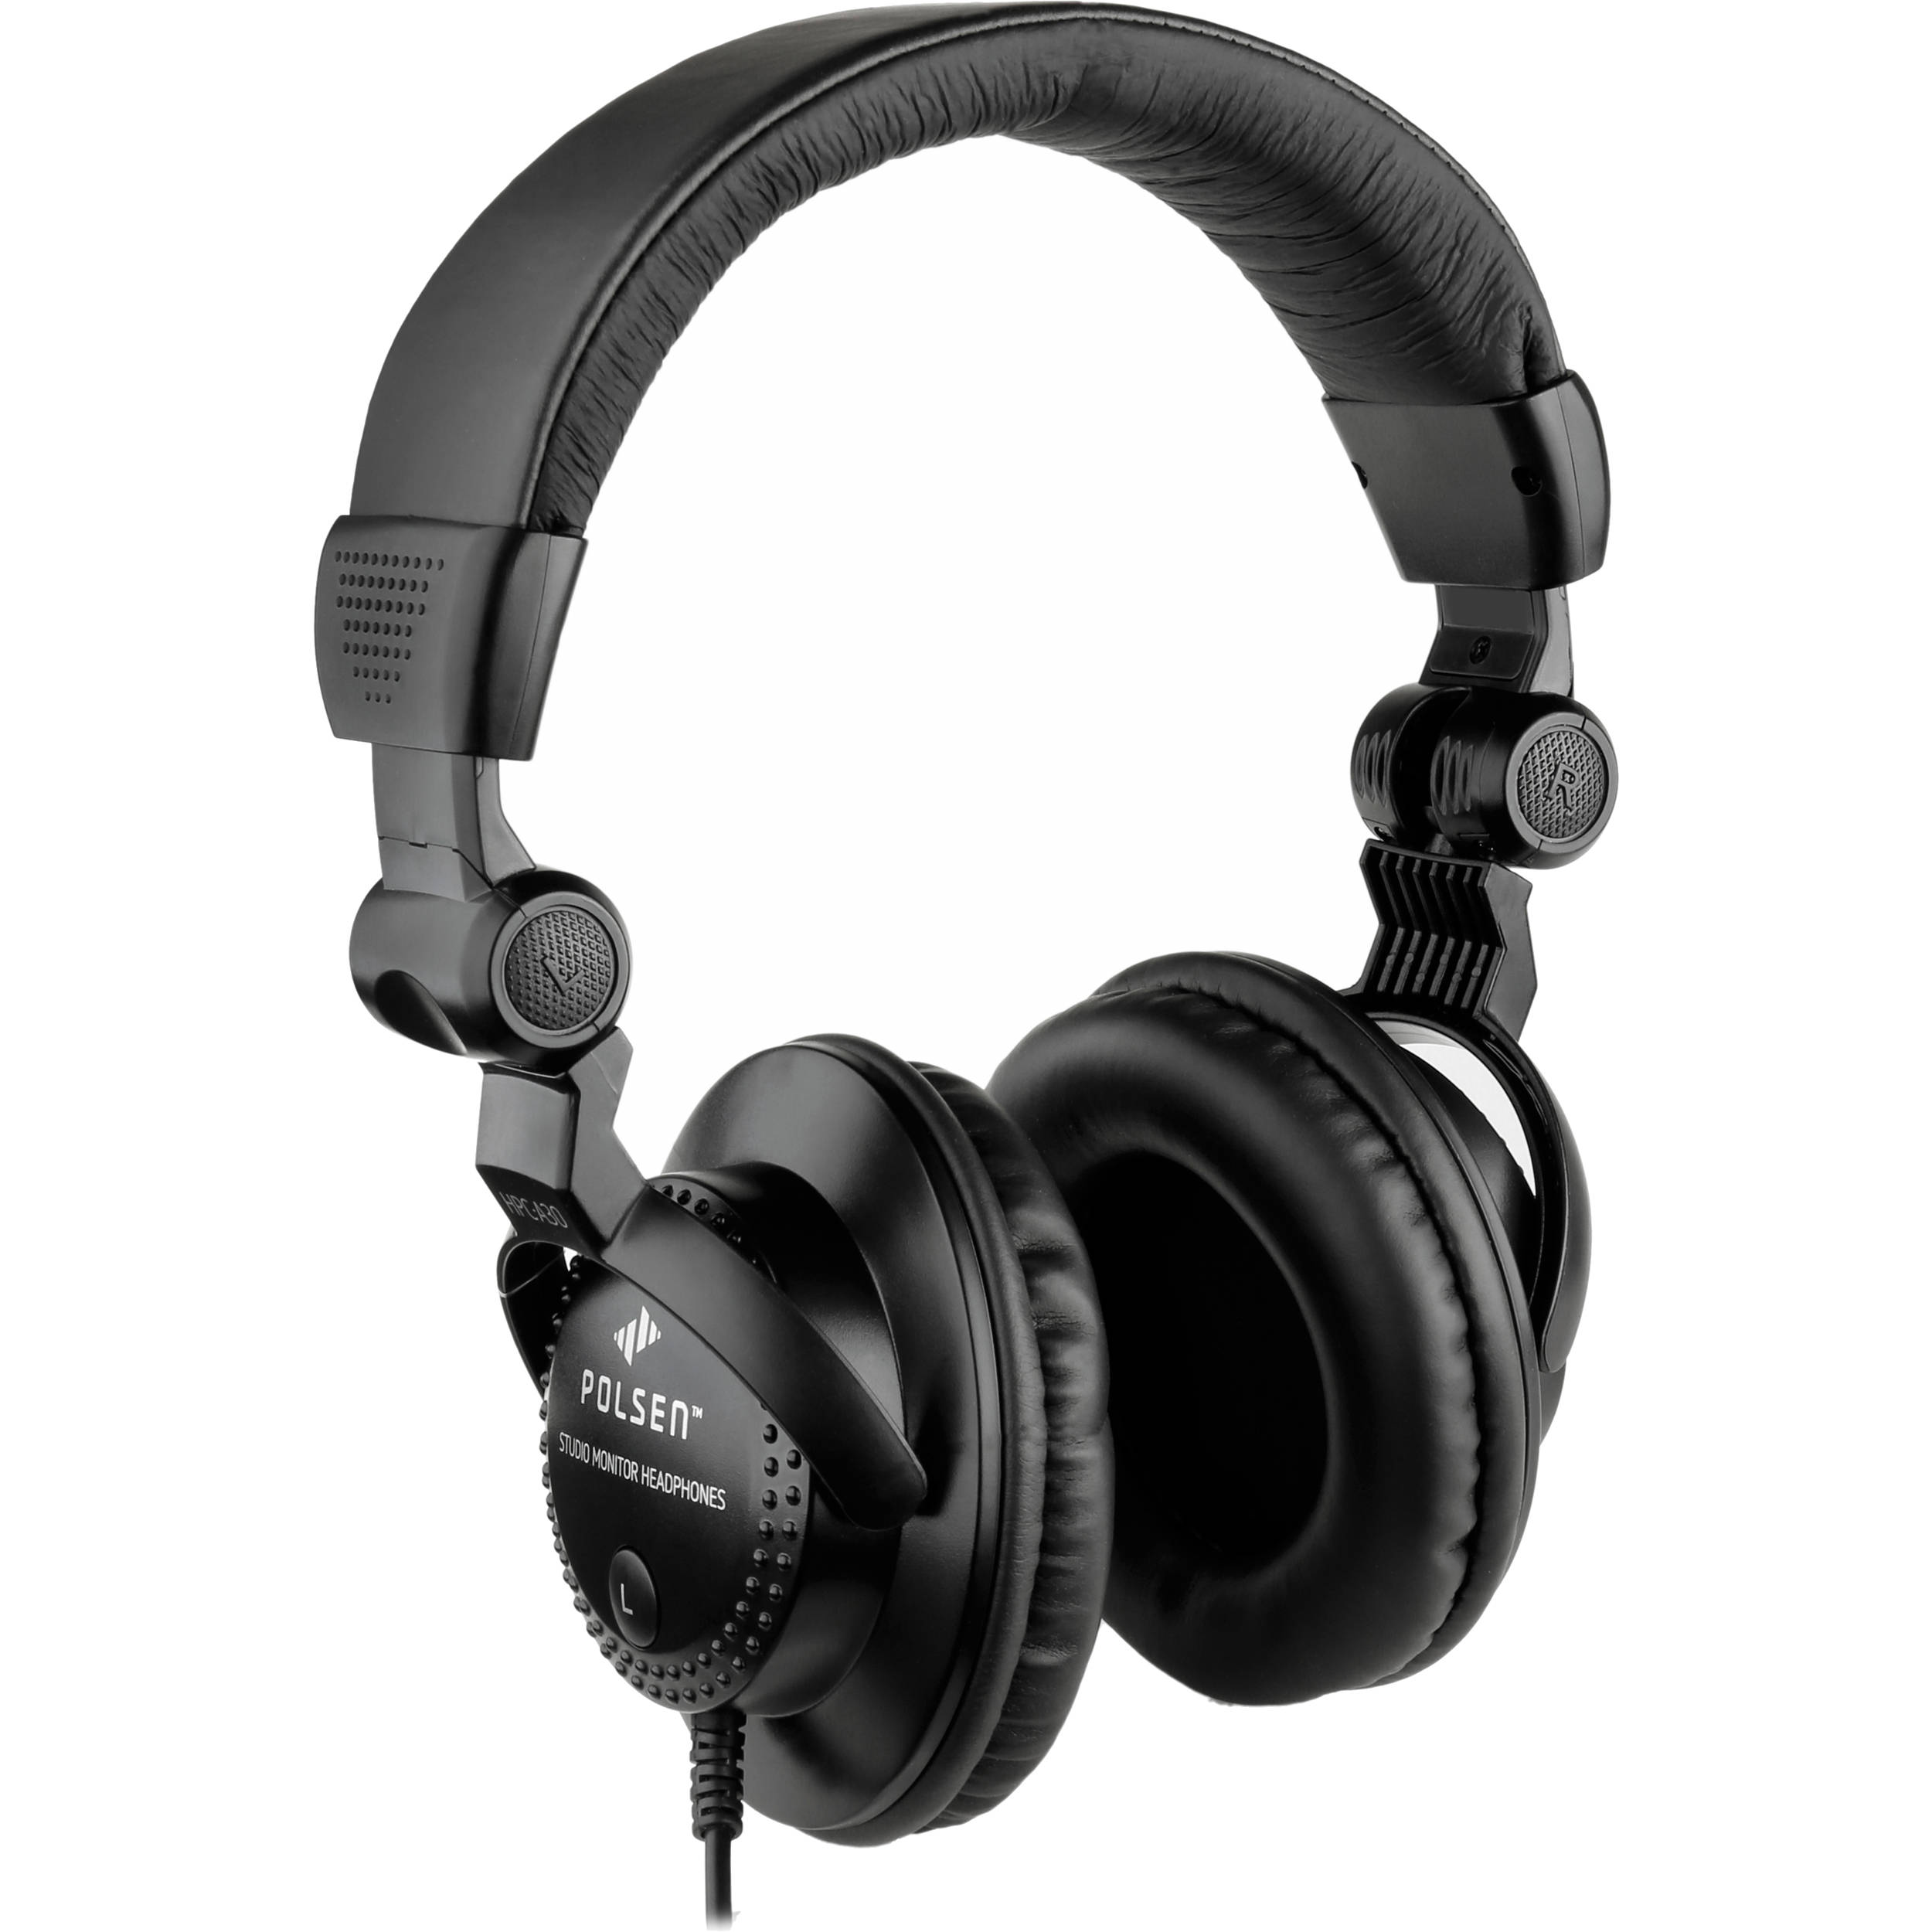 Polsen HPC-A30 Closed-Back Studio Monitor Headphones HPC-A30 B&H